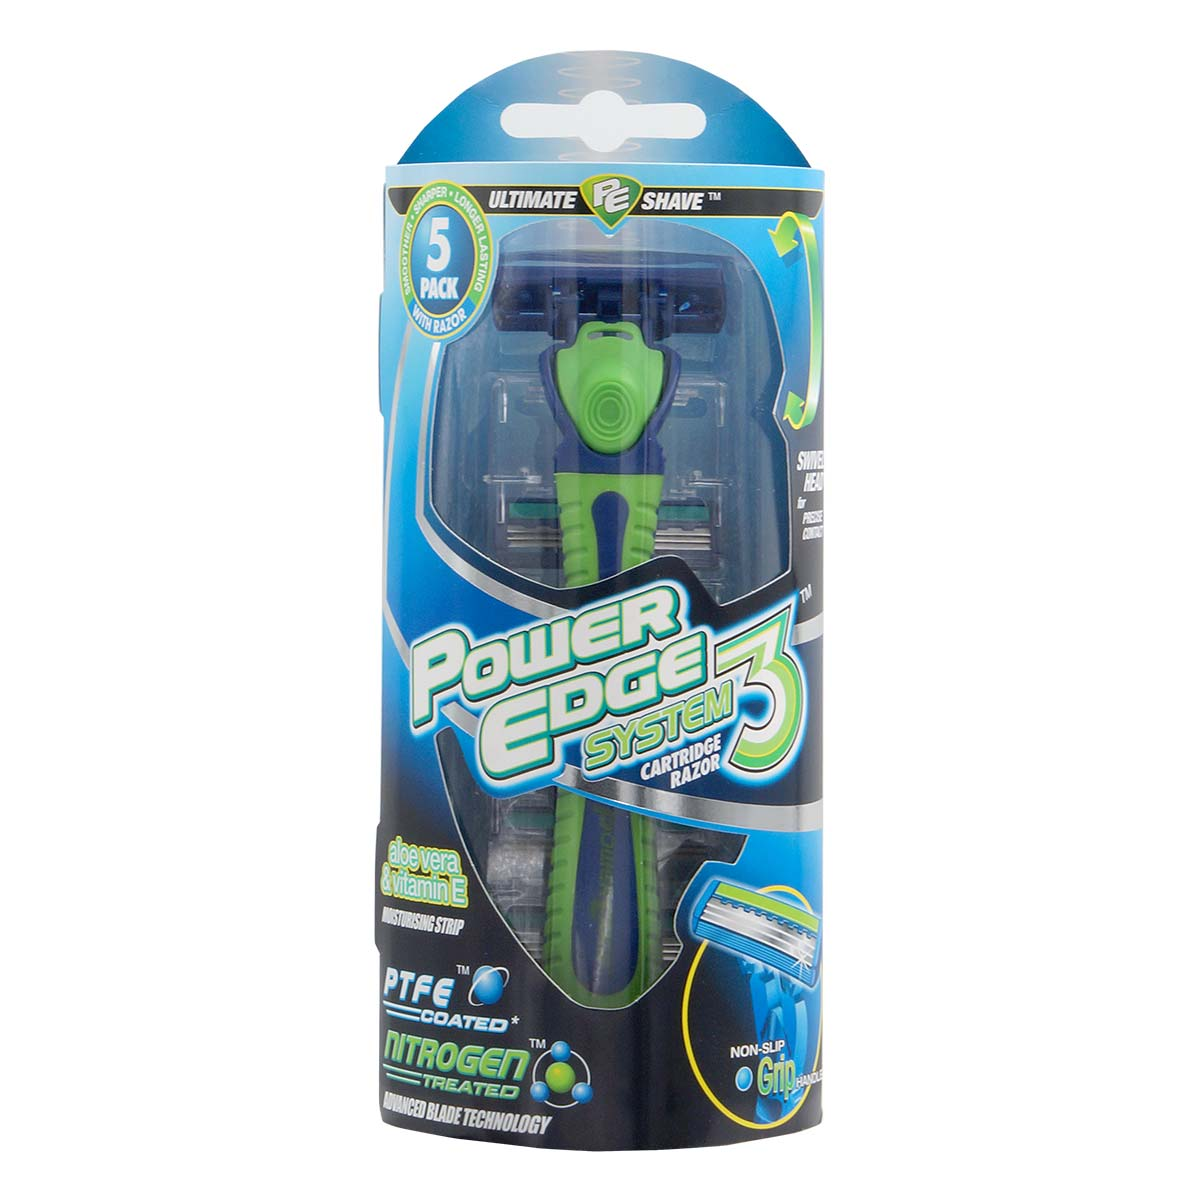 Power Edge System 3 Cartridge Razor